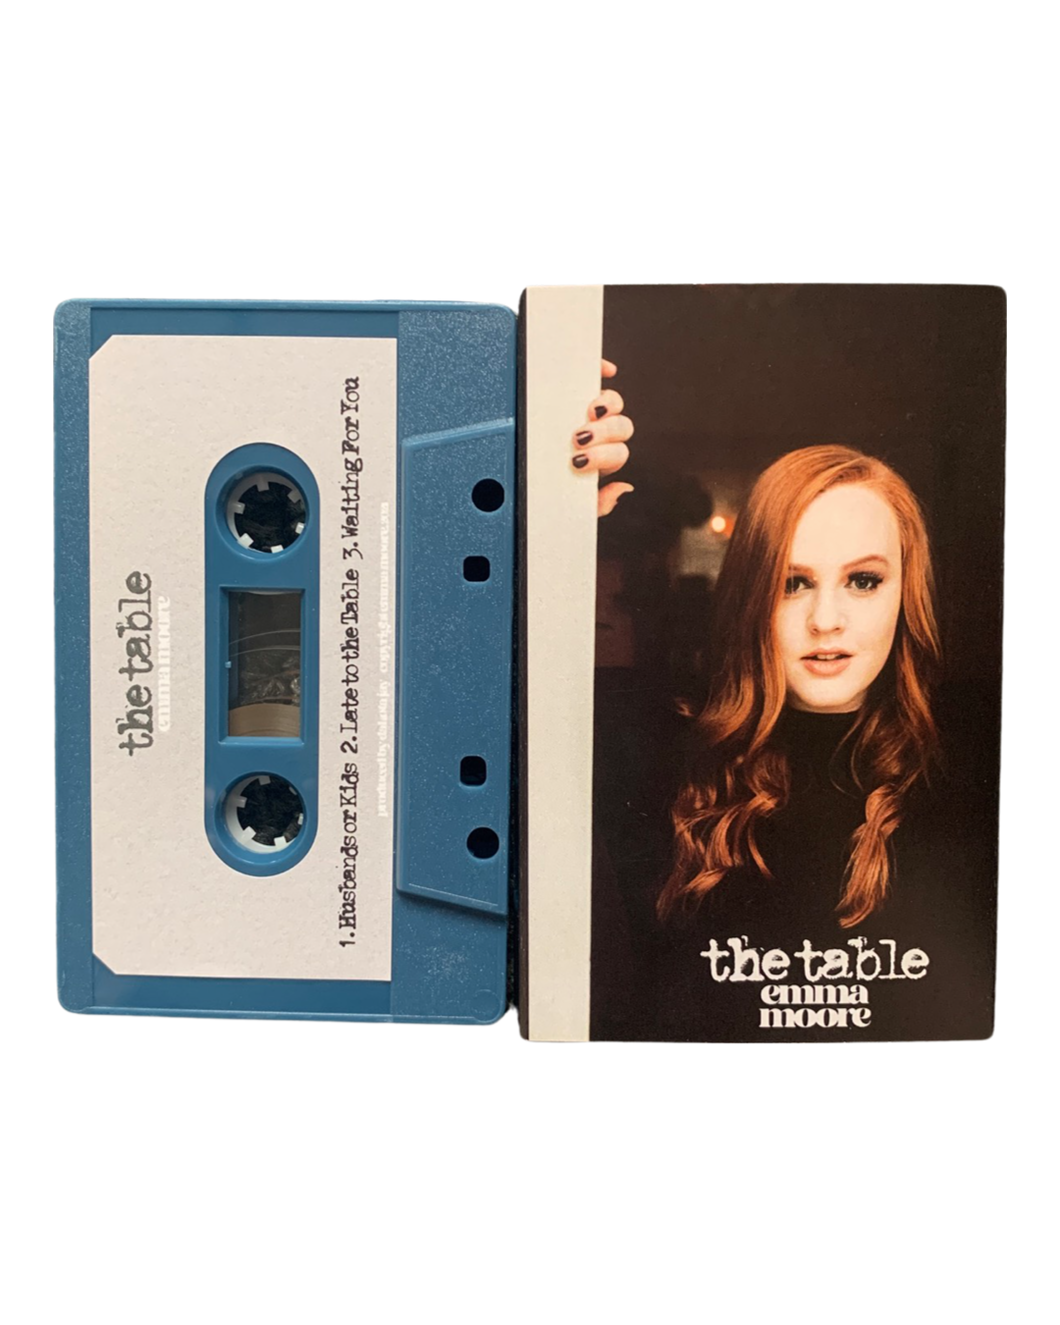 'the table' Cassette